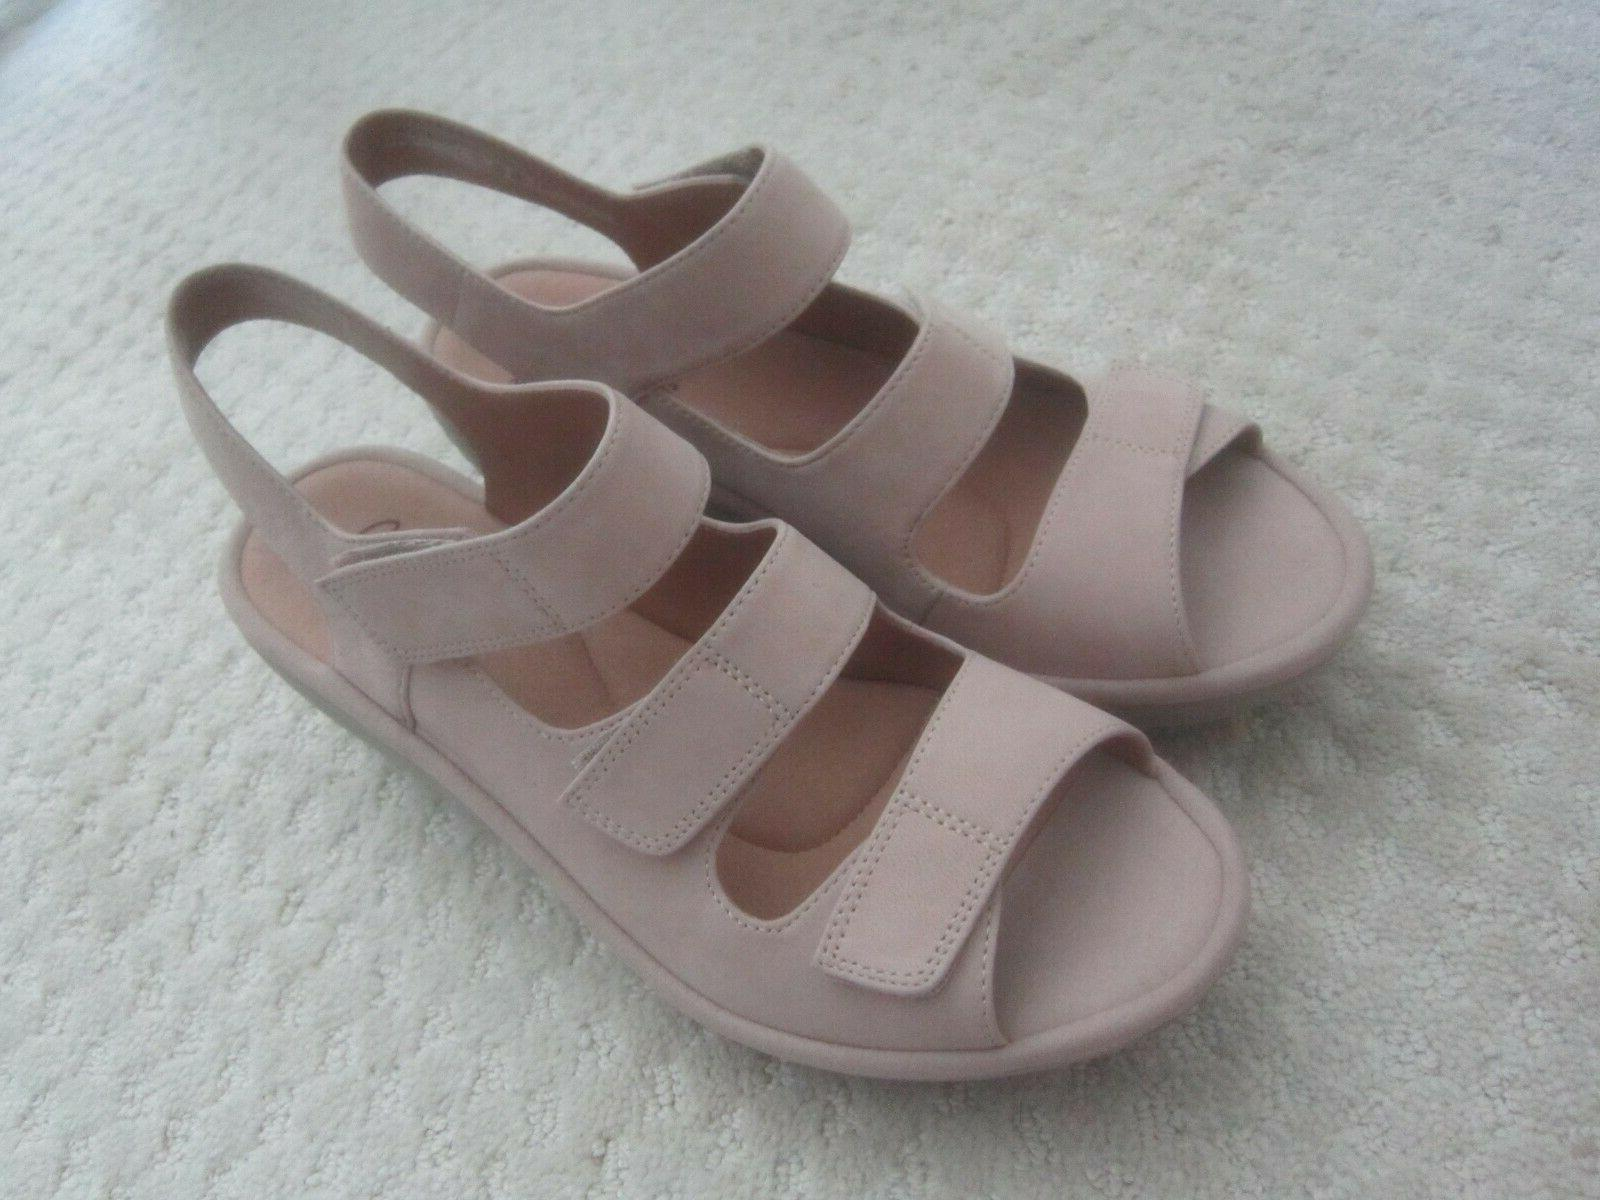 reedly juno nubuck leather wedge sandals sand